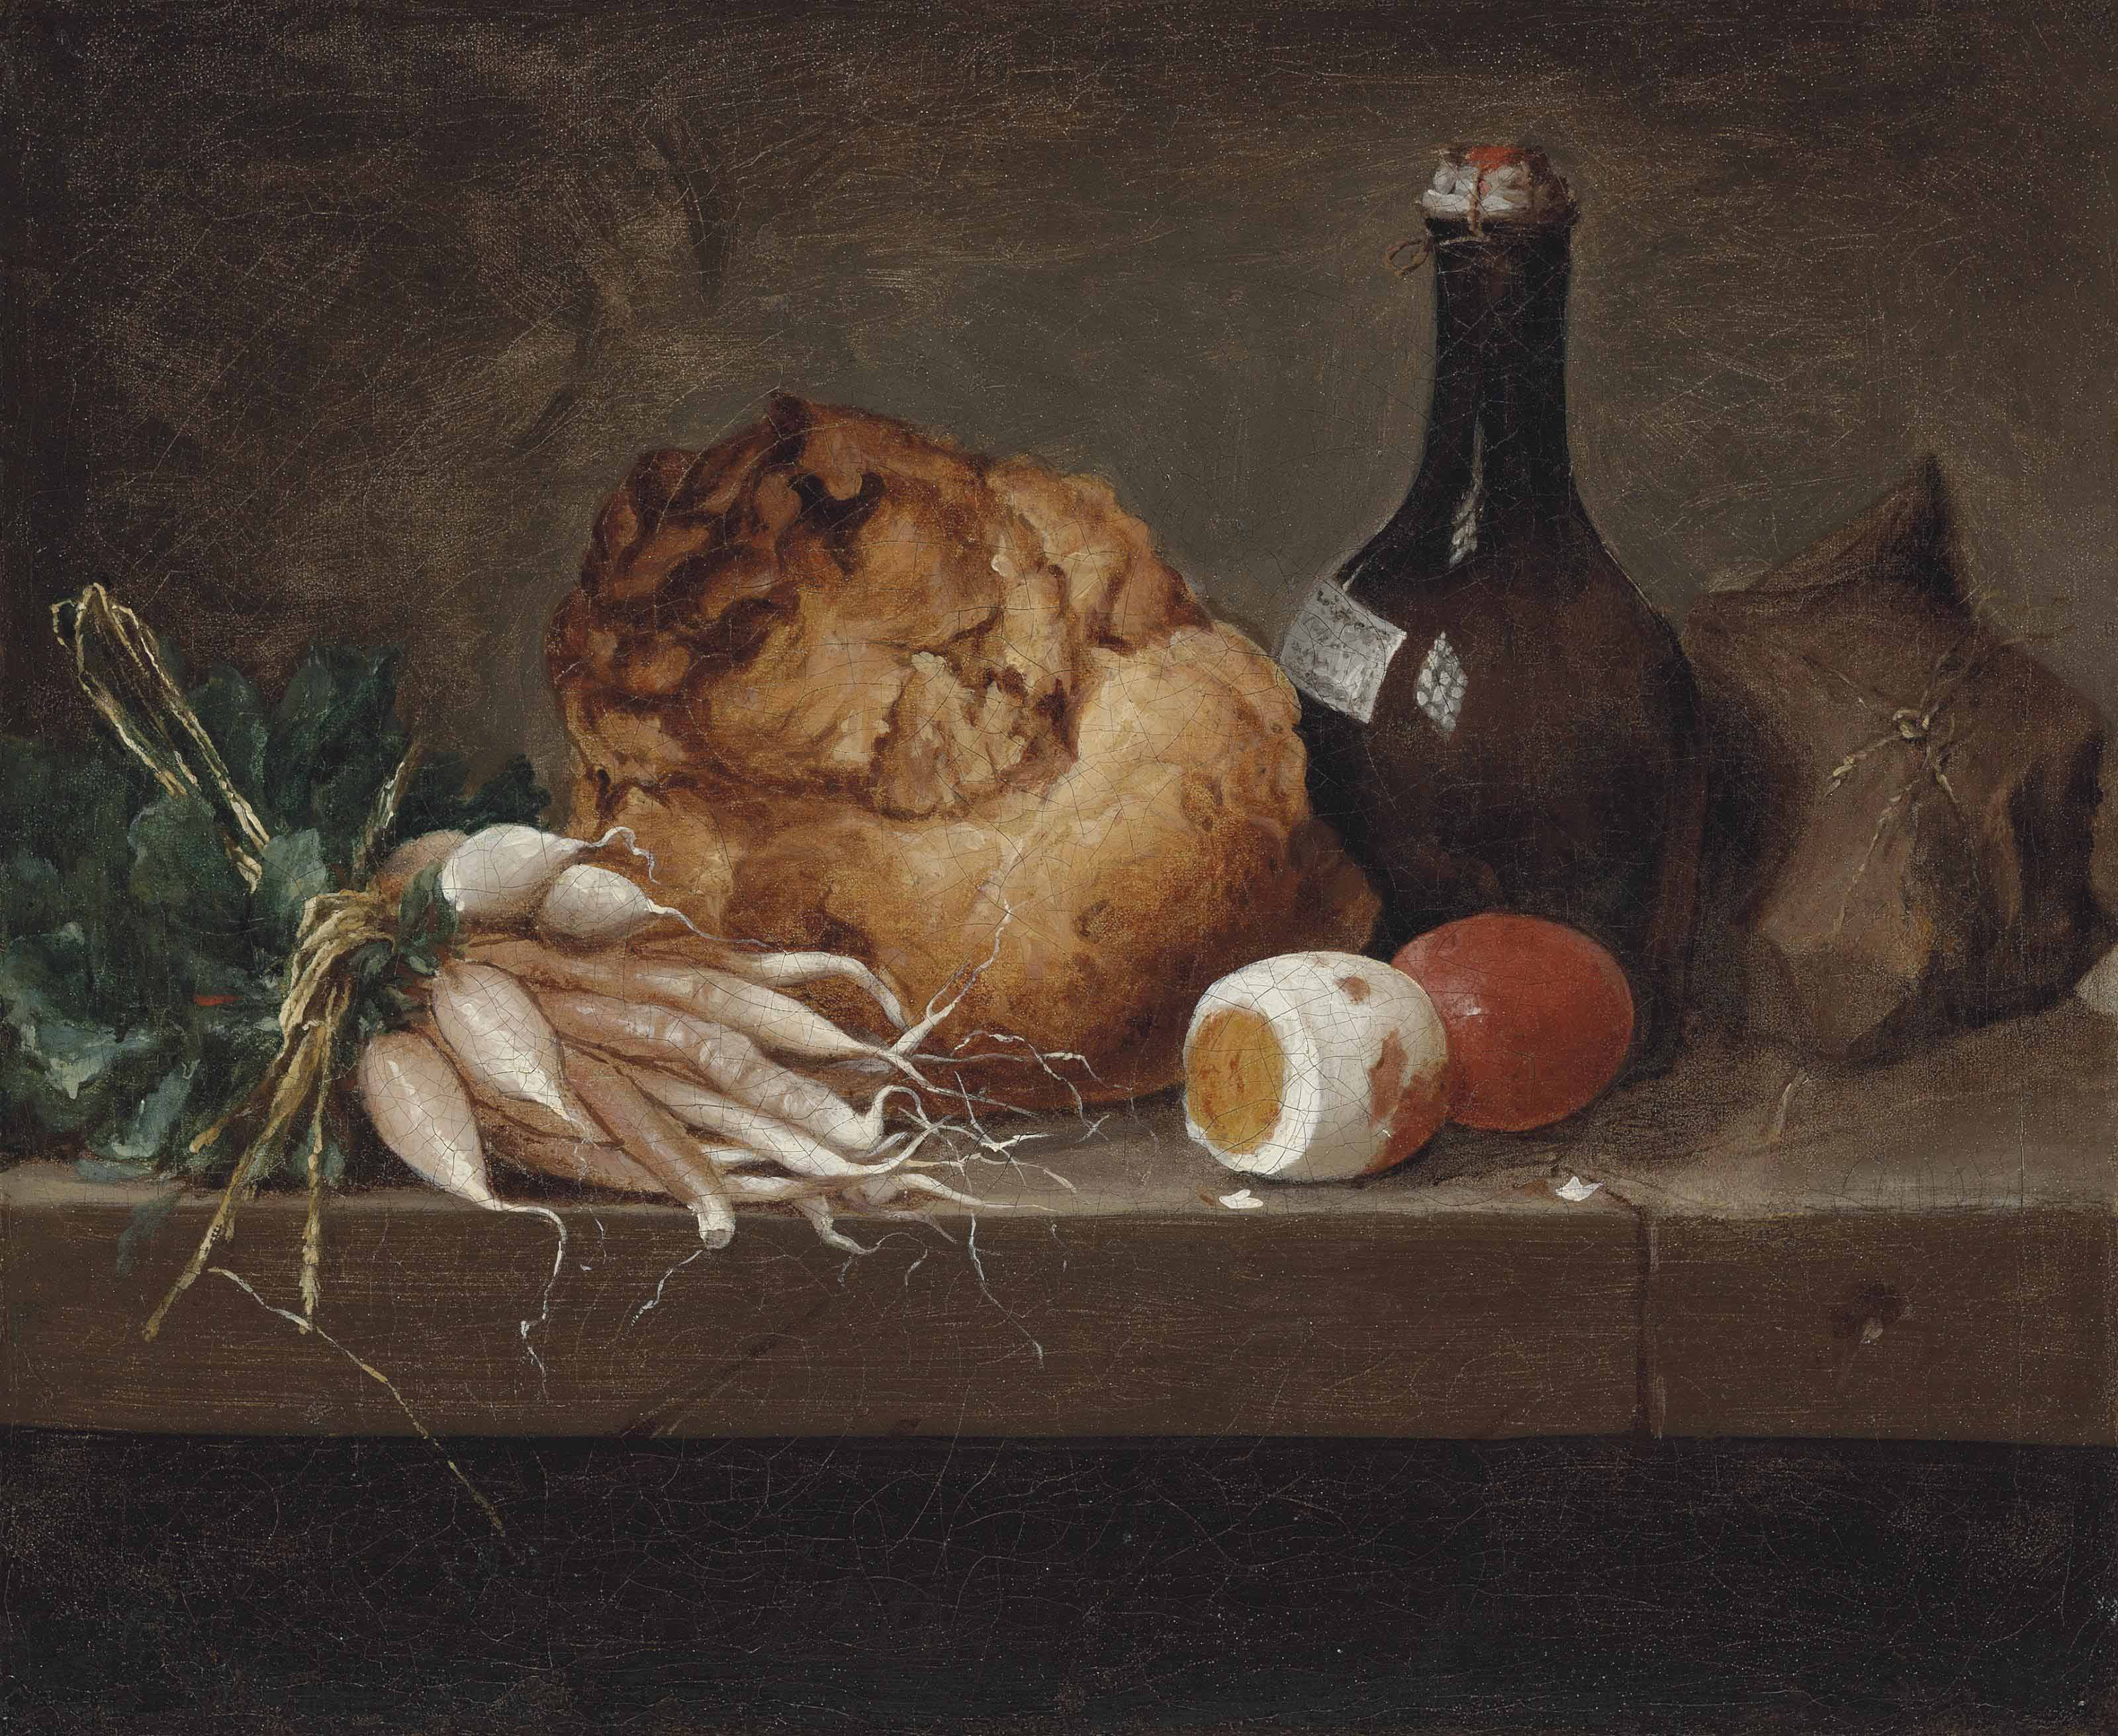 Parsnips, a loaf of bread, eggs and a bottle on a stone ledge